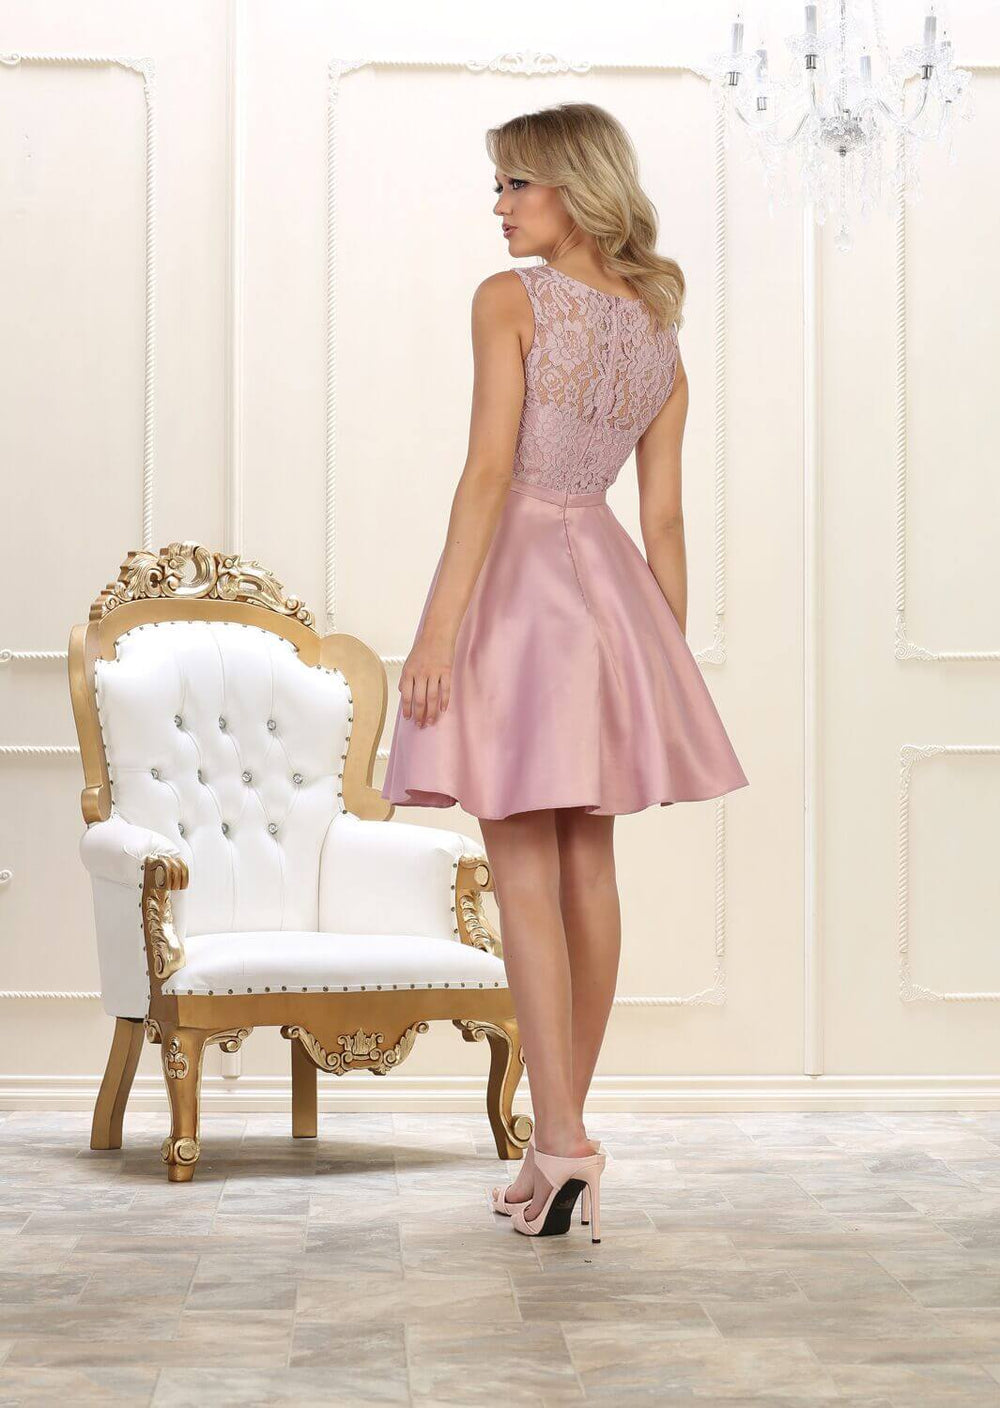 Short Prom Dress Formal Graduation Cocktail - The Dress Outlet